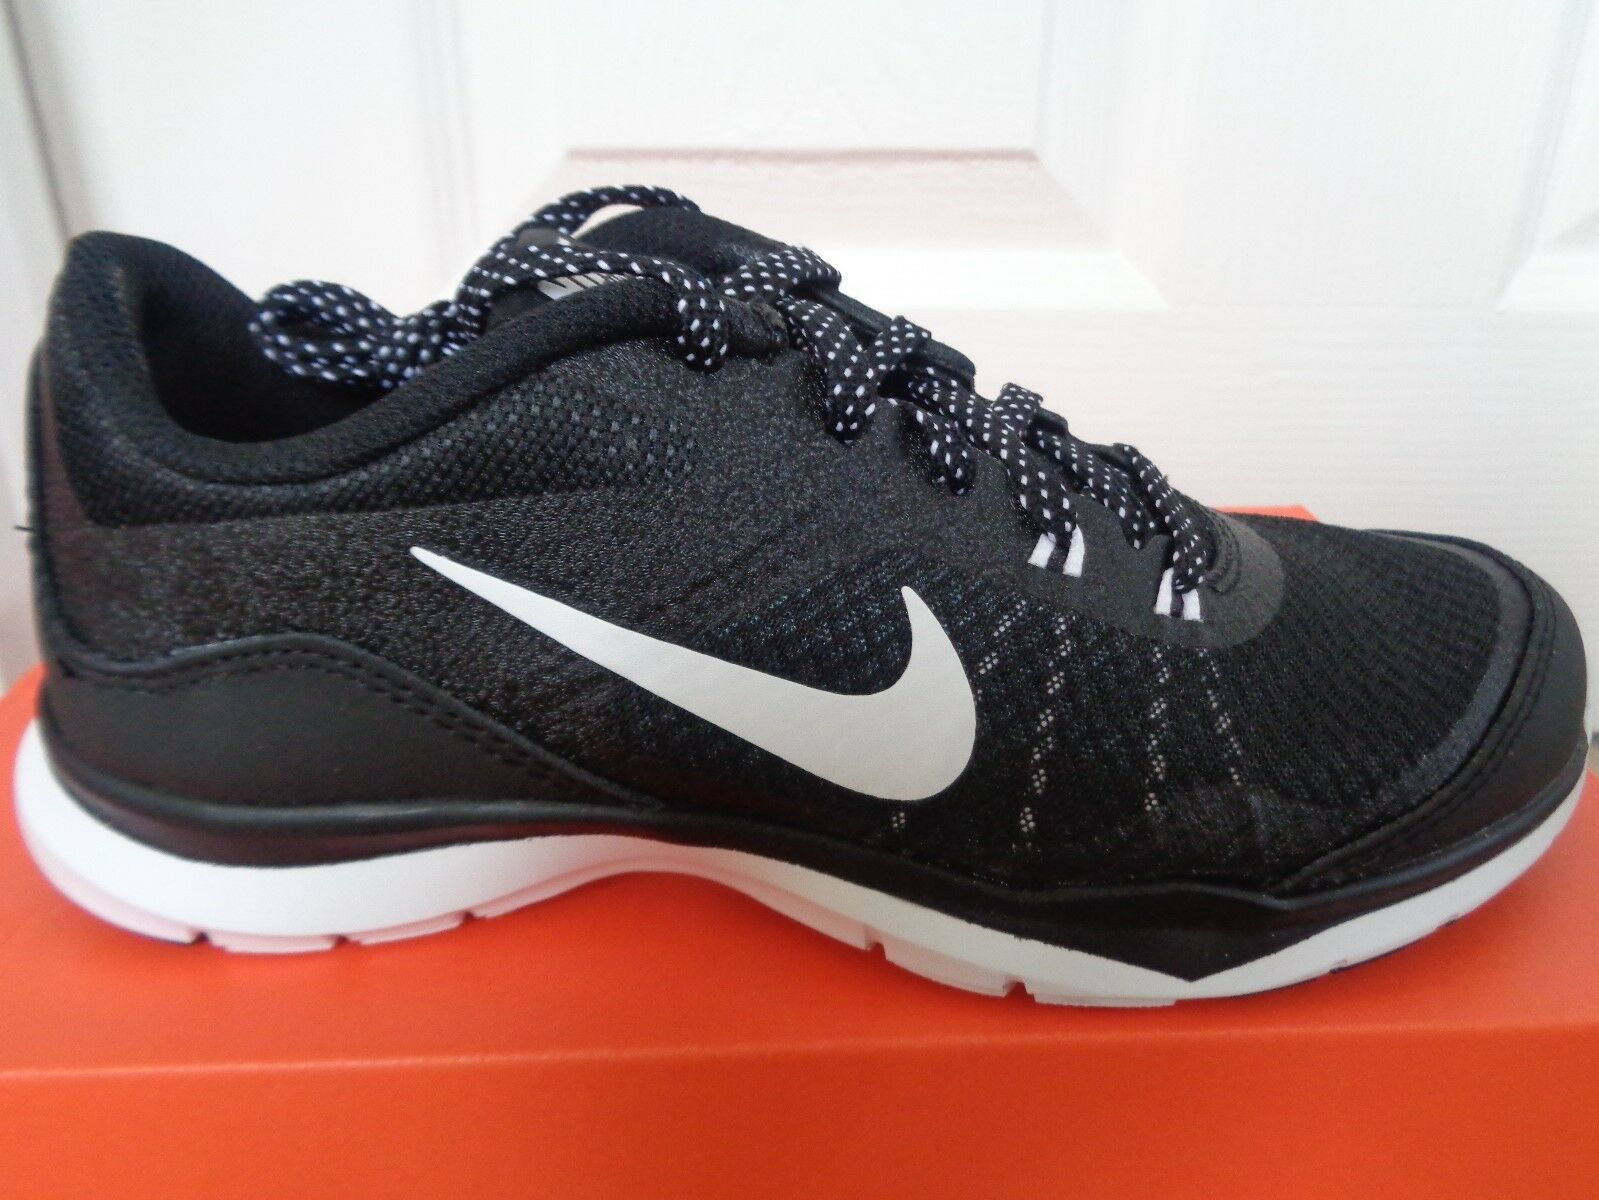 Nike Flex TR5 Trainer 5 Womens Running Shoes 724858 Size 11